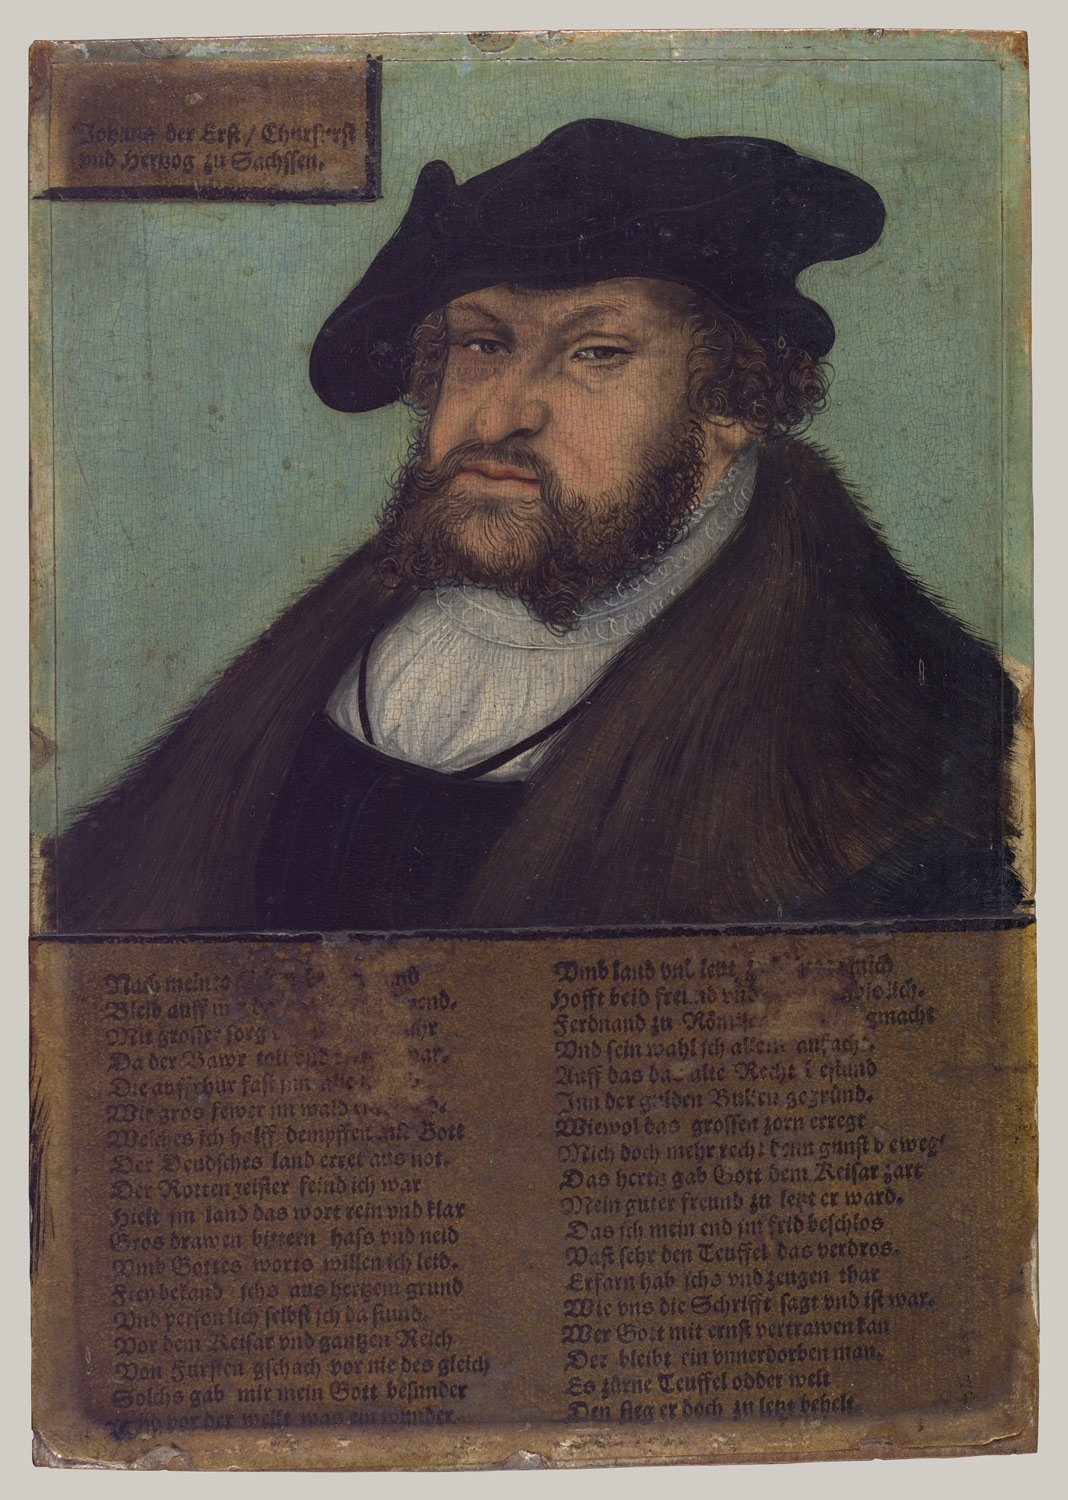 10 Best Identify Five Ideas Taught By John Calvin the reformation essay heilbrunn timeline of art history the 2021